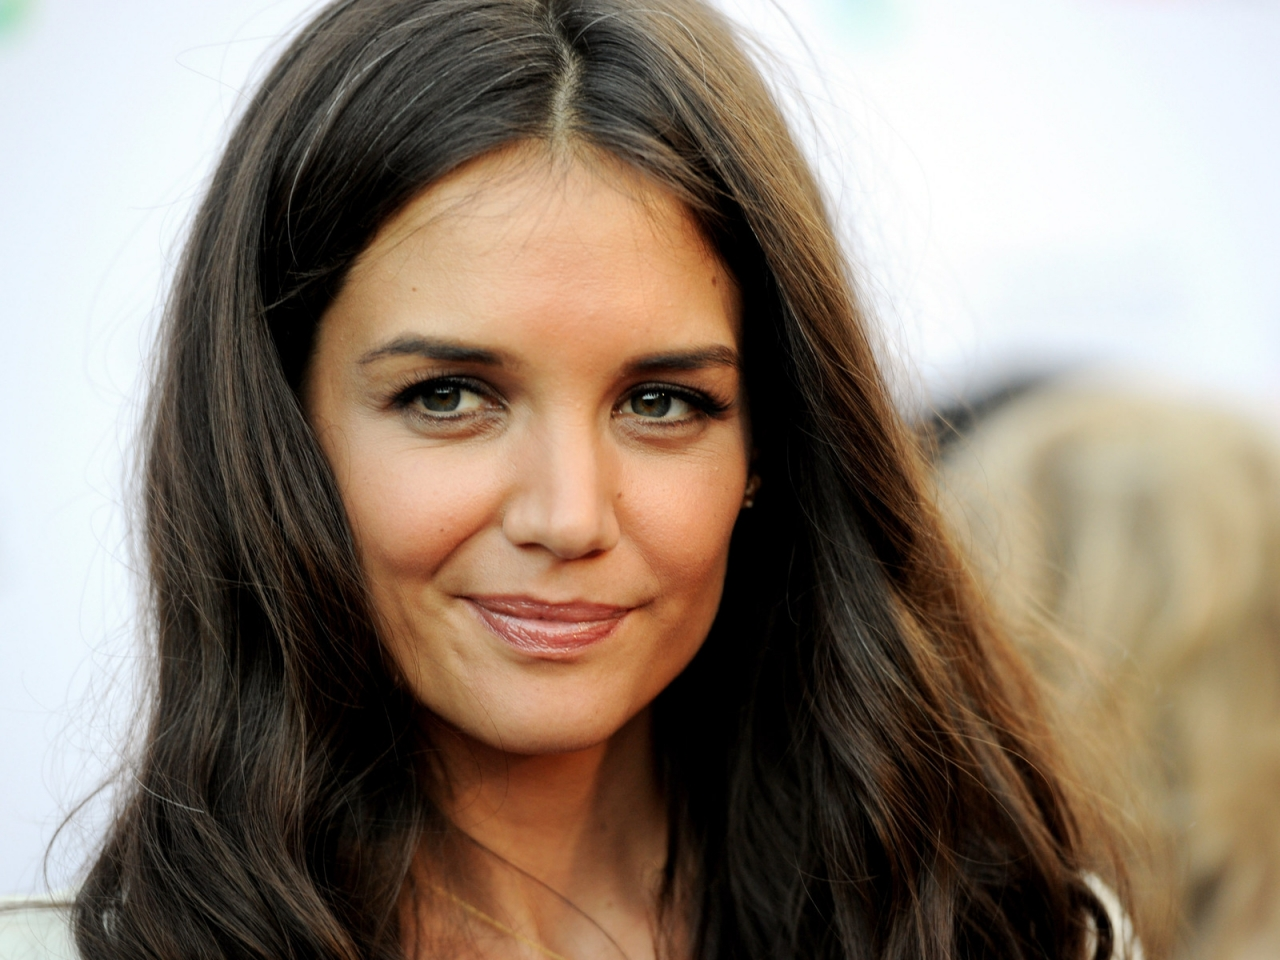 Katie Holmes Hair for 1280 x 960 resolution